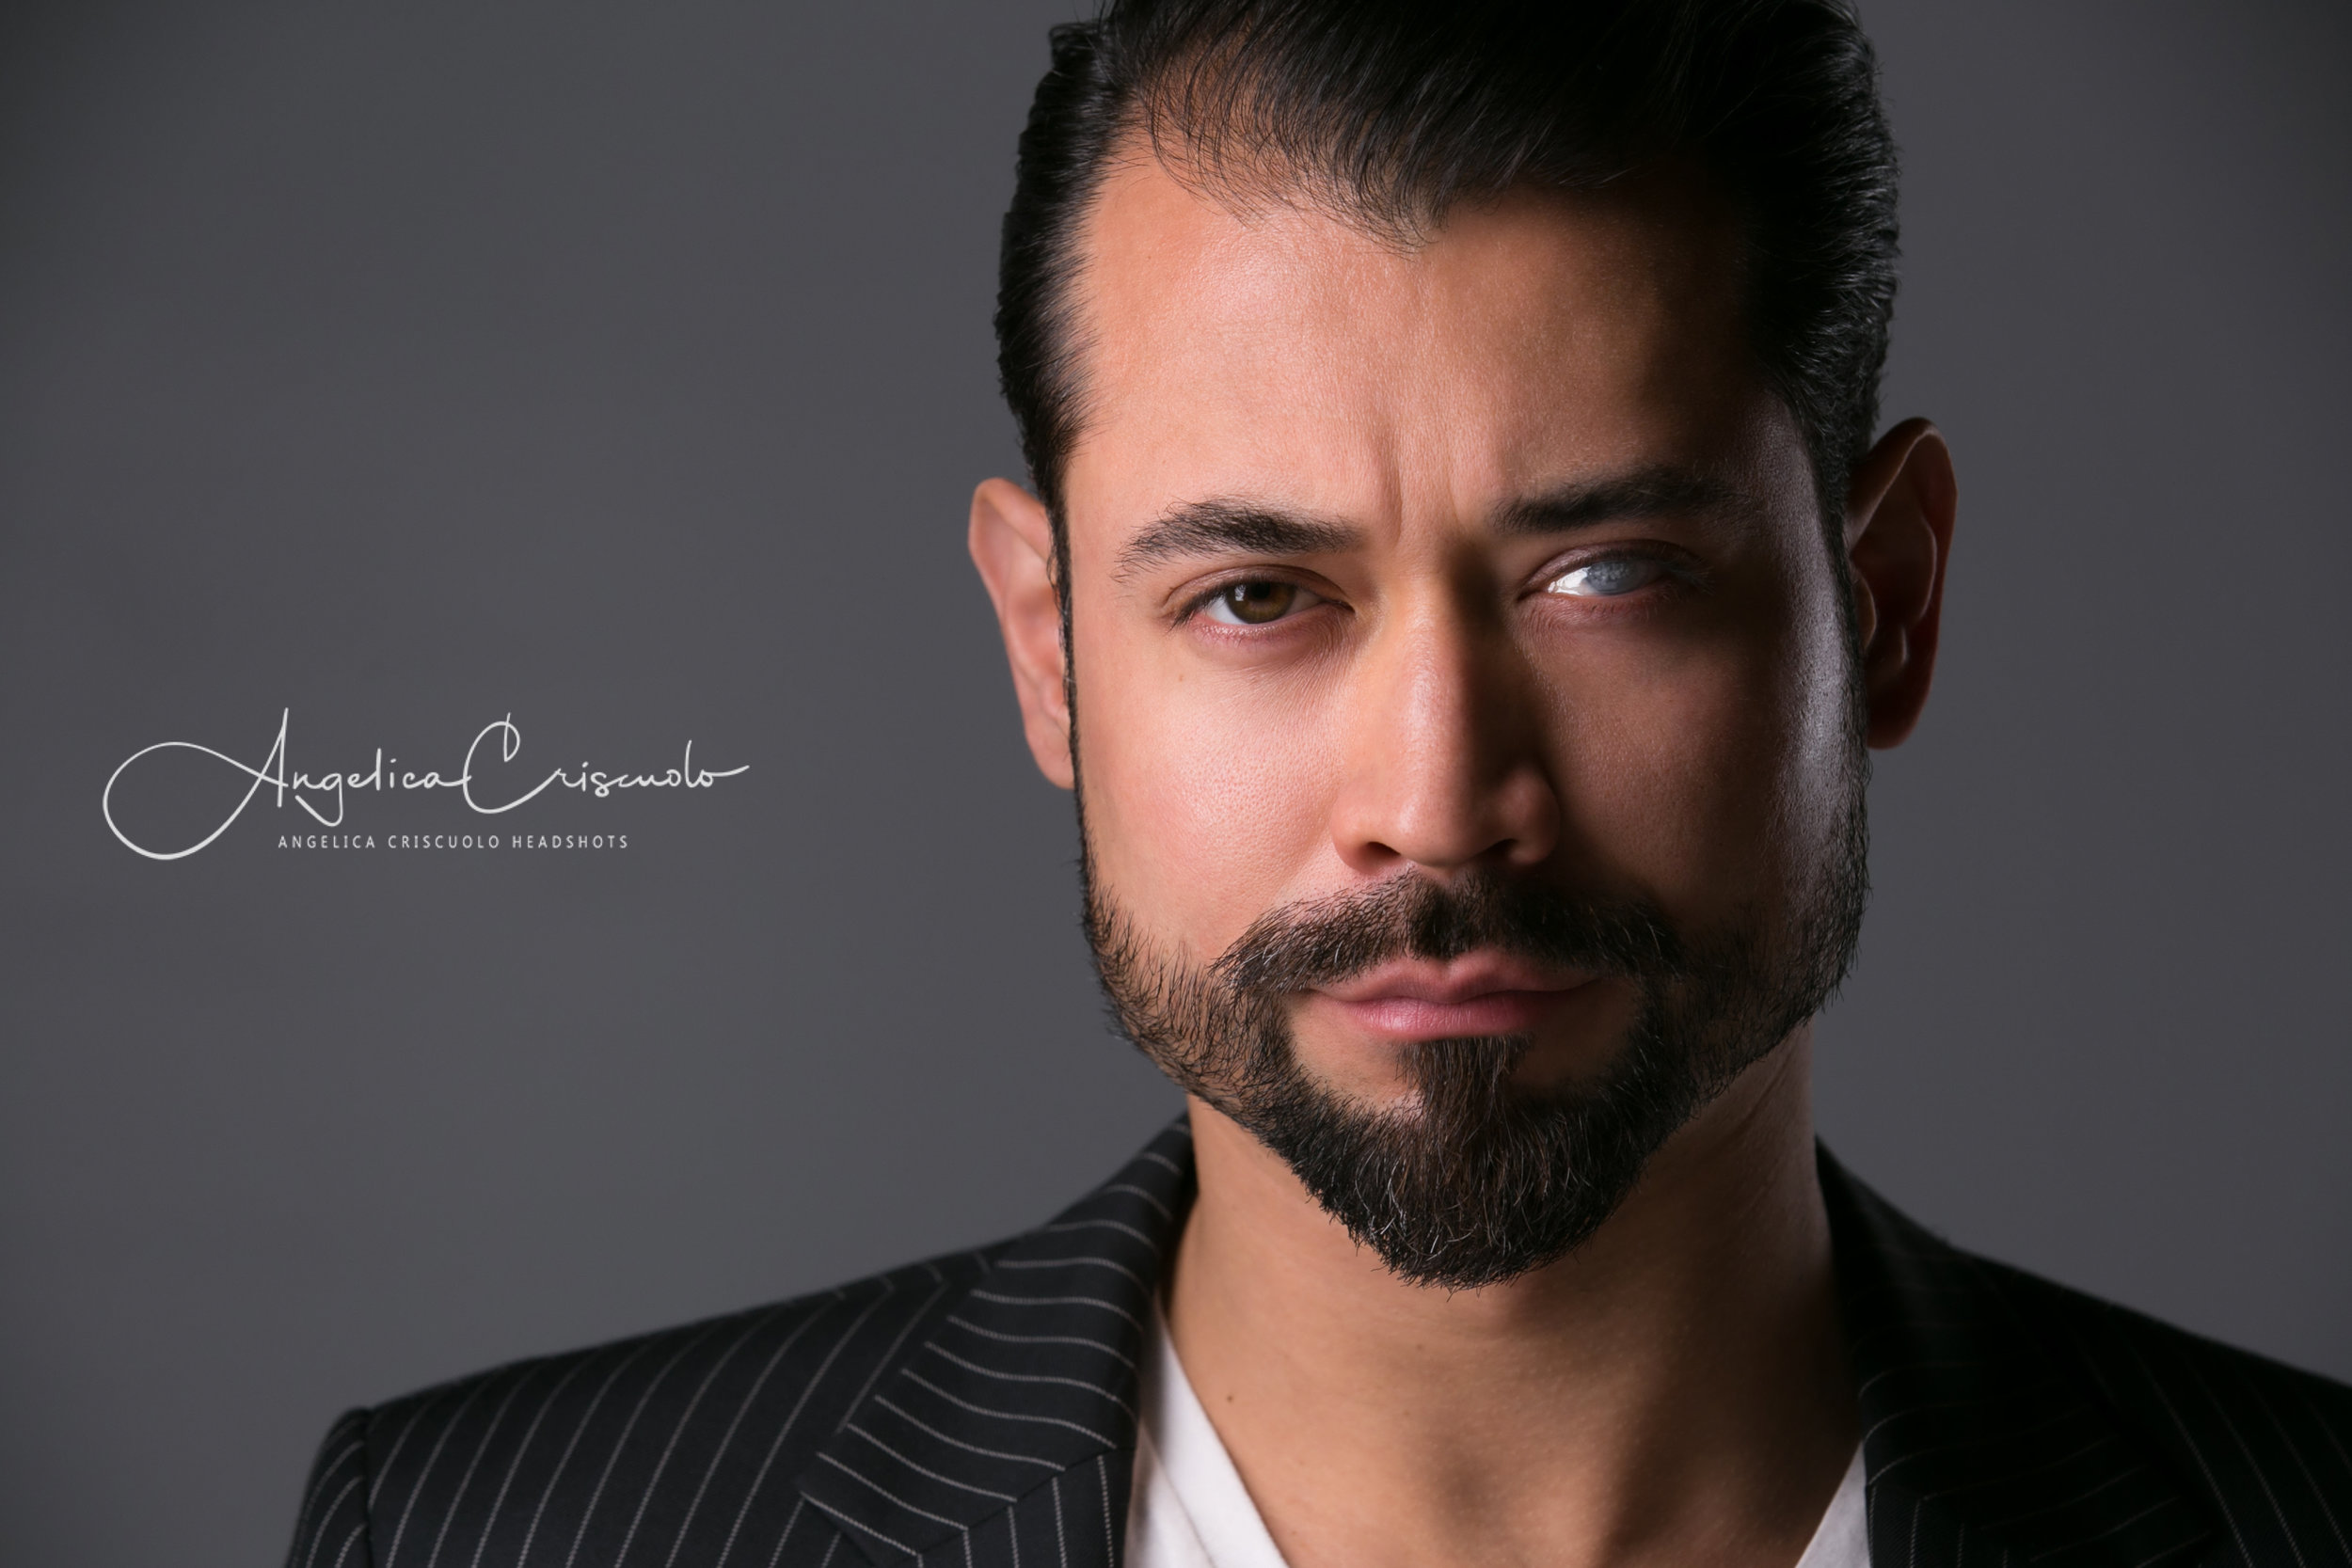 New York Headshot photography